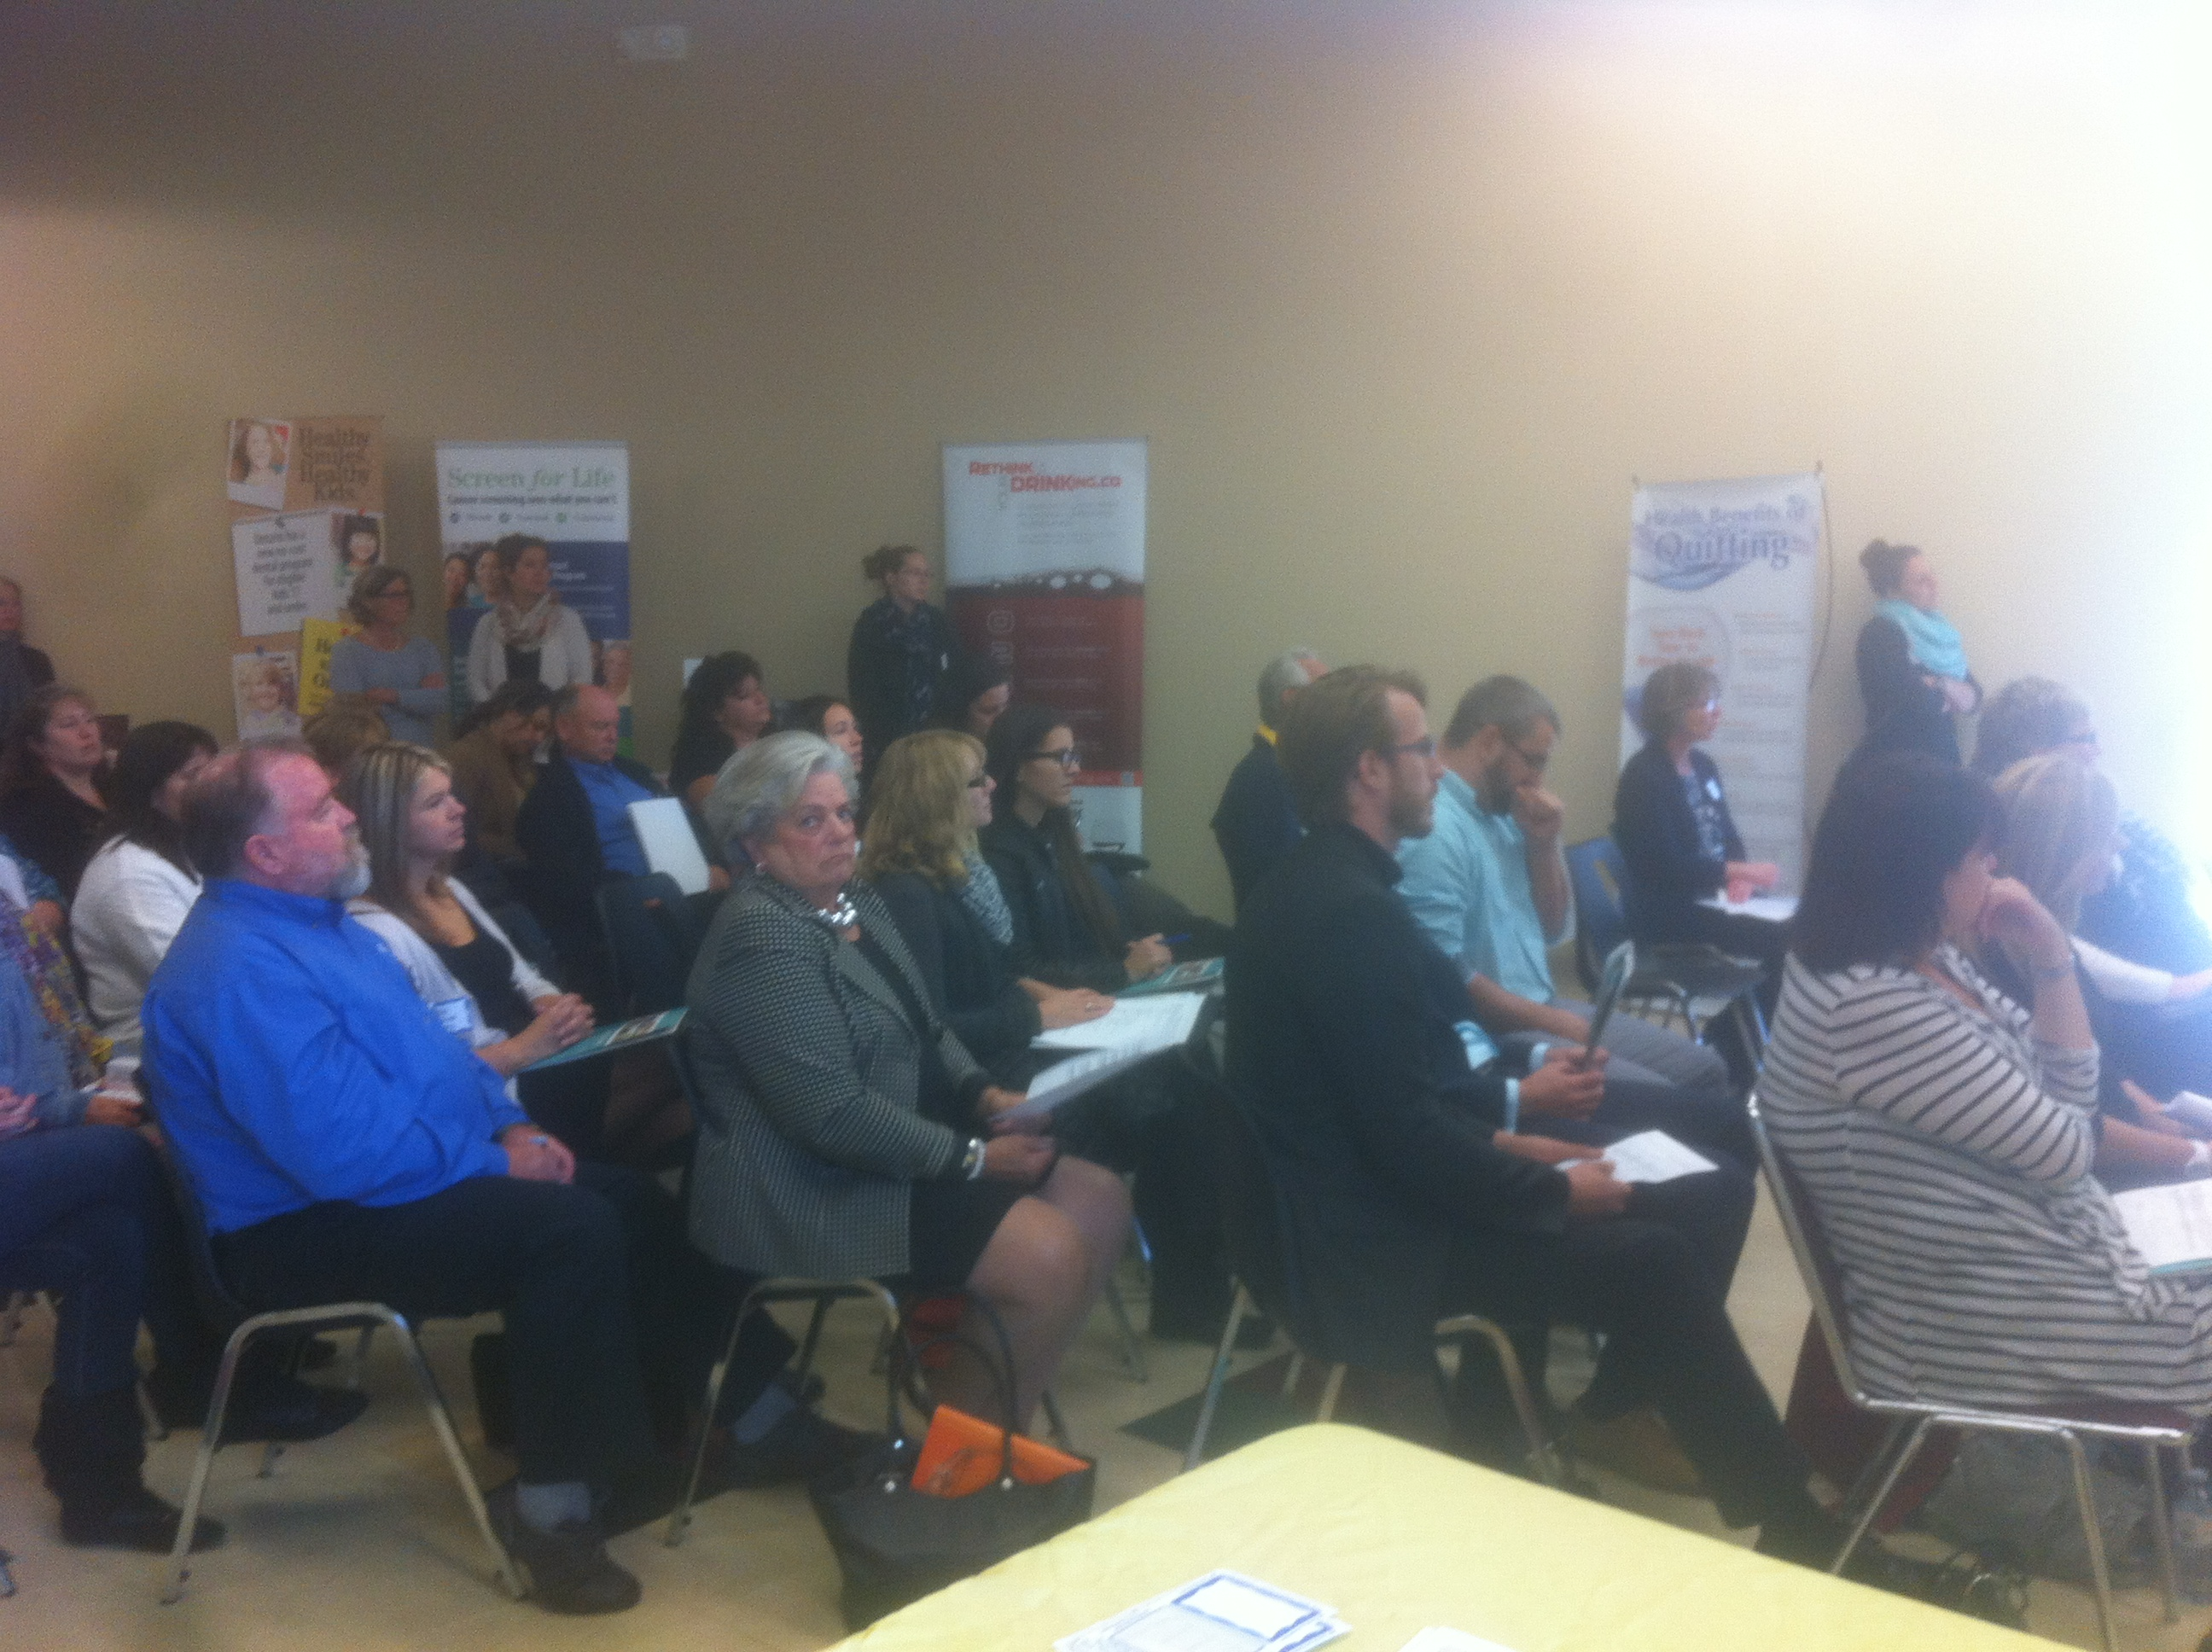 Attendees at a workplace wellness workshop in Chatham. (Photo by Jake Kislinsky)